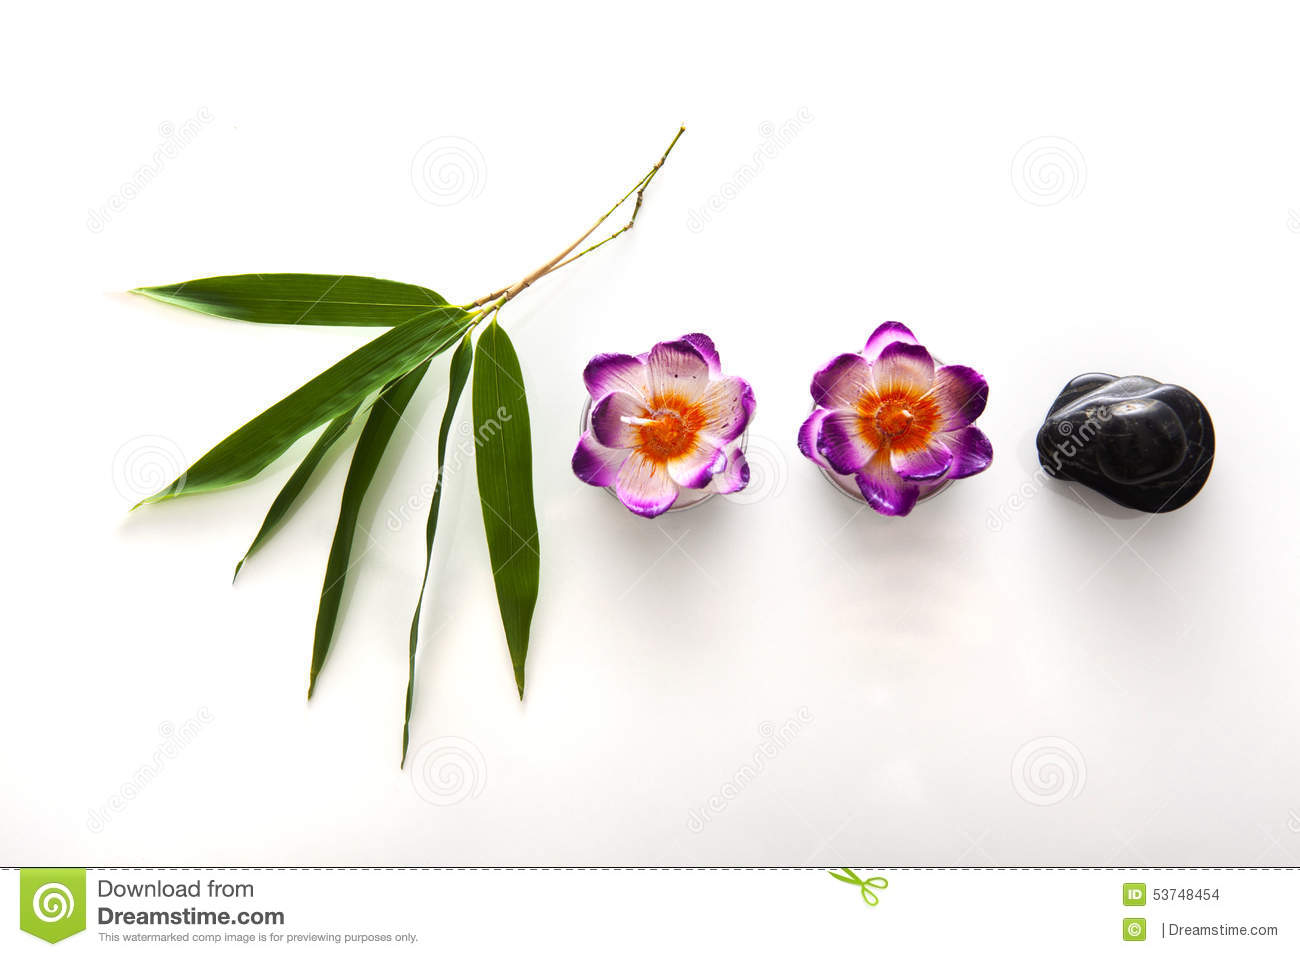 Download Bamboo Leaves Candles And Stones Stock Photo - Image of perfect, background: 53748454